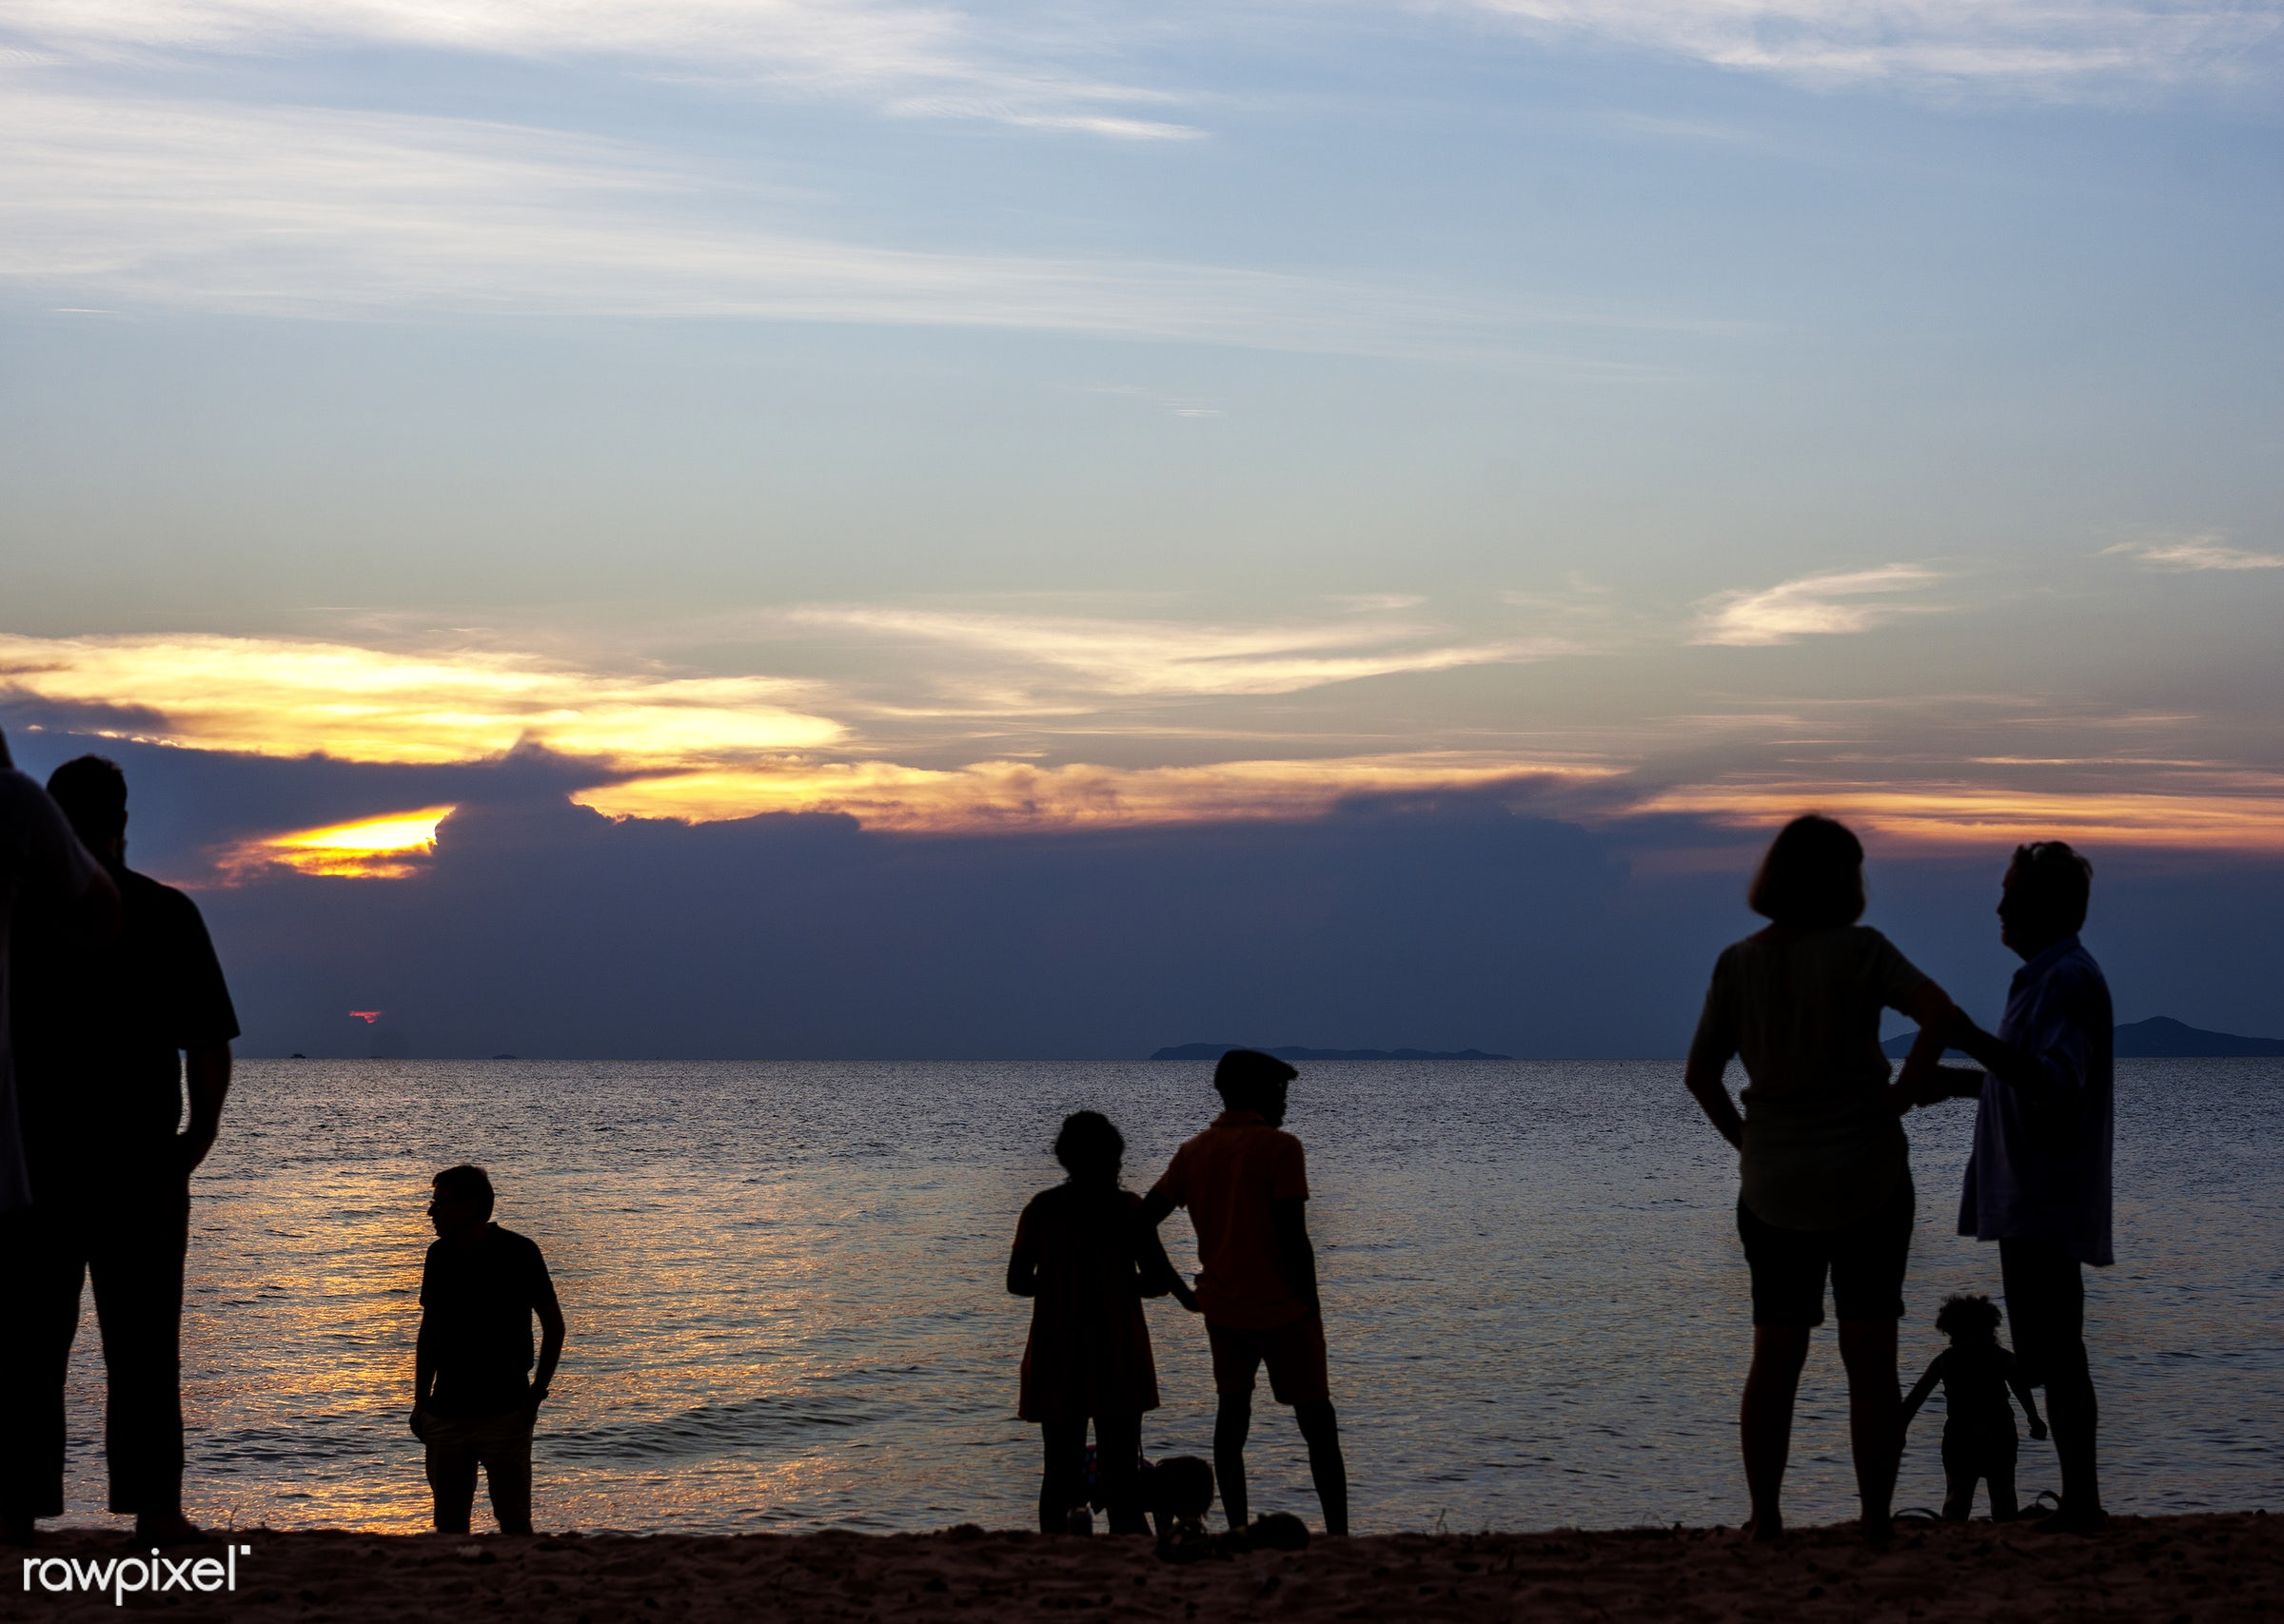 Silhouette rear view of people standing at the beach sunset together - adult, beach, cheerful, children, cloudy, coast, dawn...